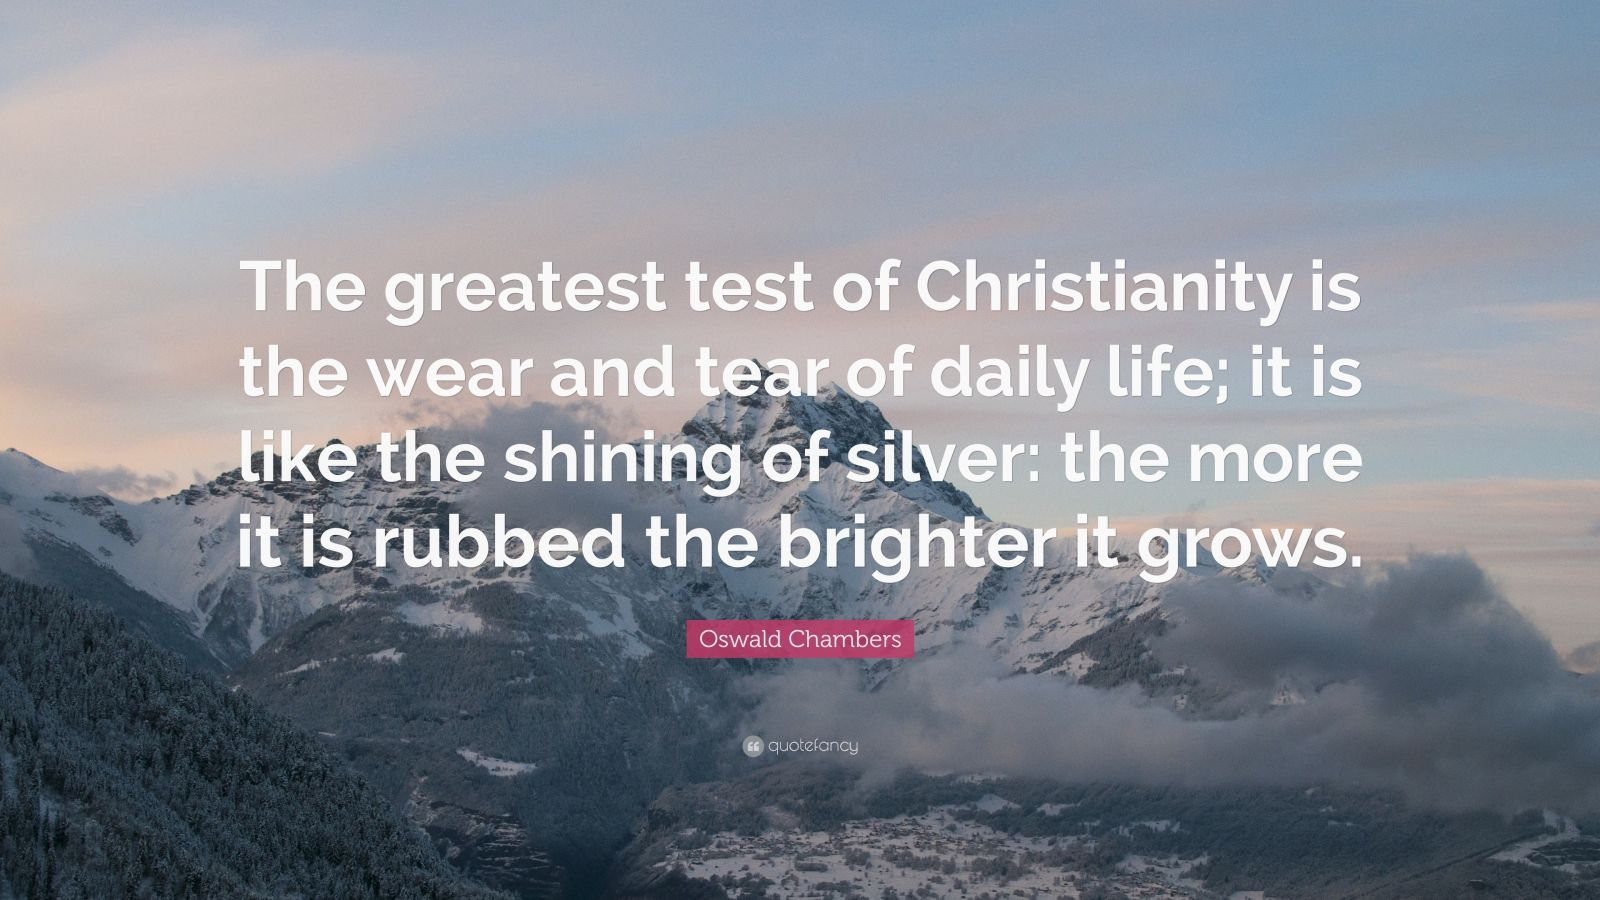 """Oswald Chambers Quote: """"The greatest test of Christianity is the wear and tear of daily life; it is like the shining of silver: the more it is rubbed the brighter it grows."""""""